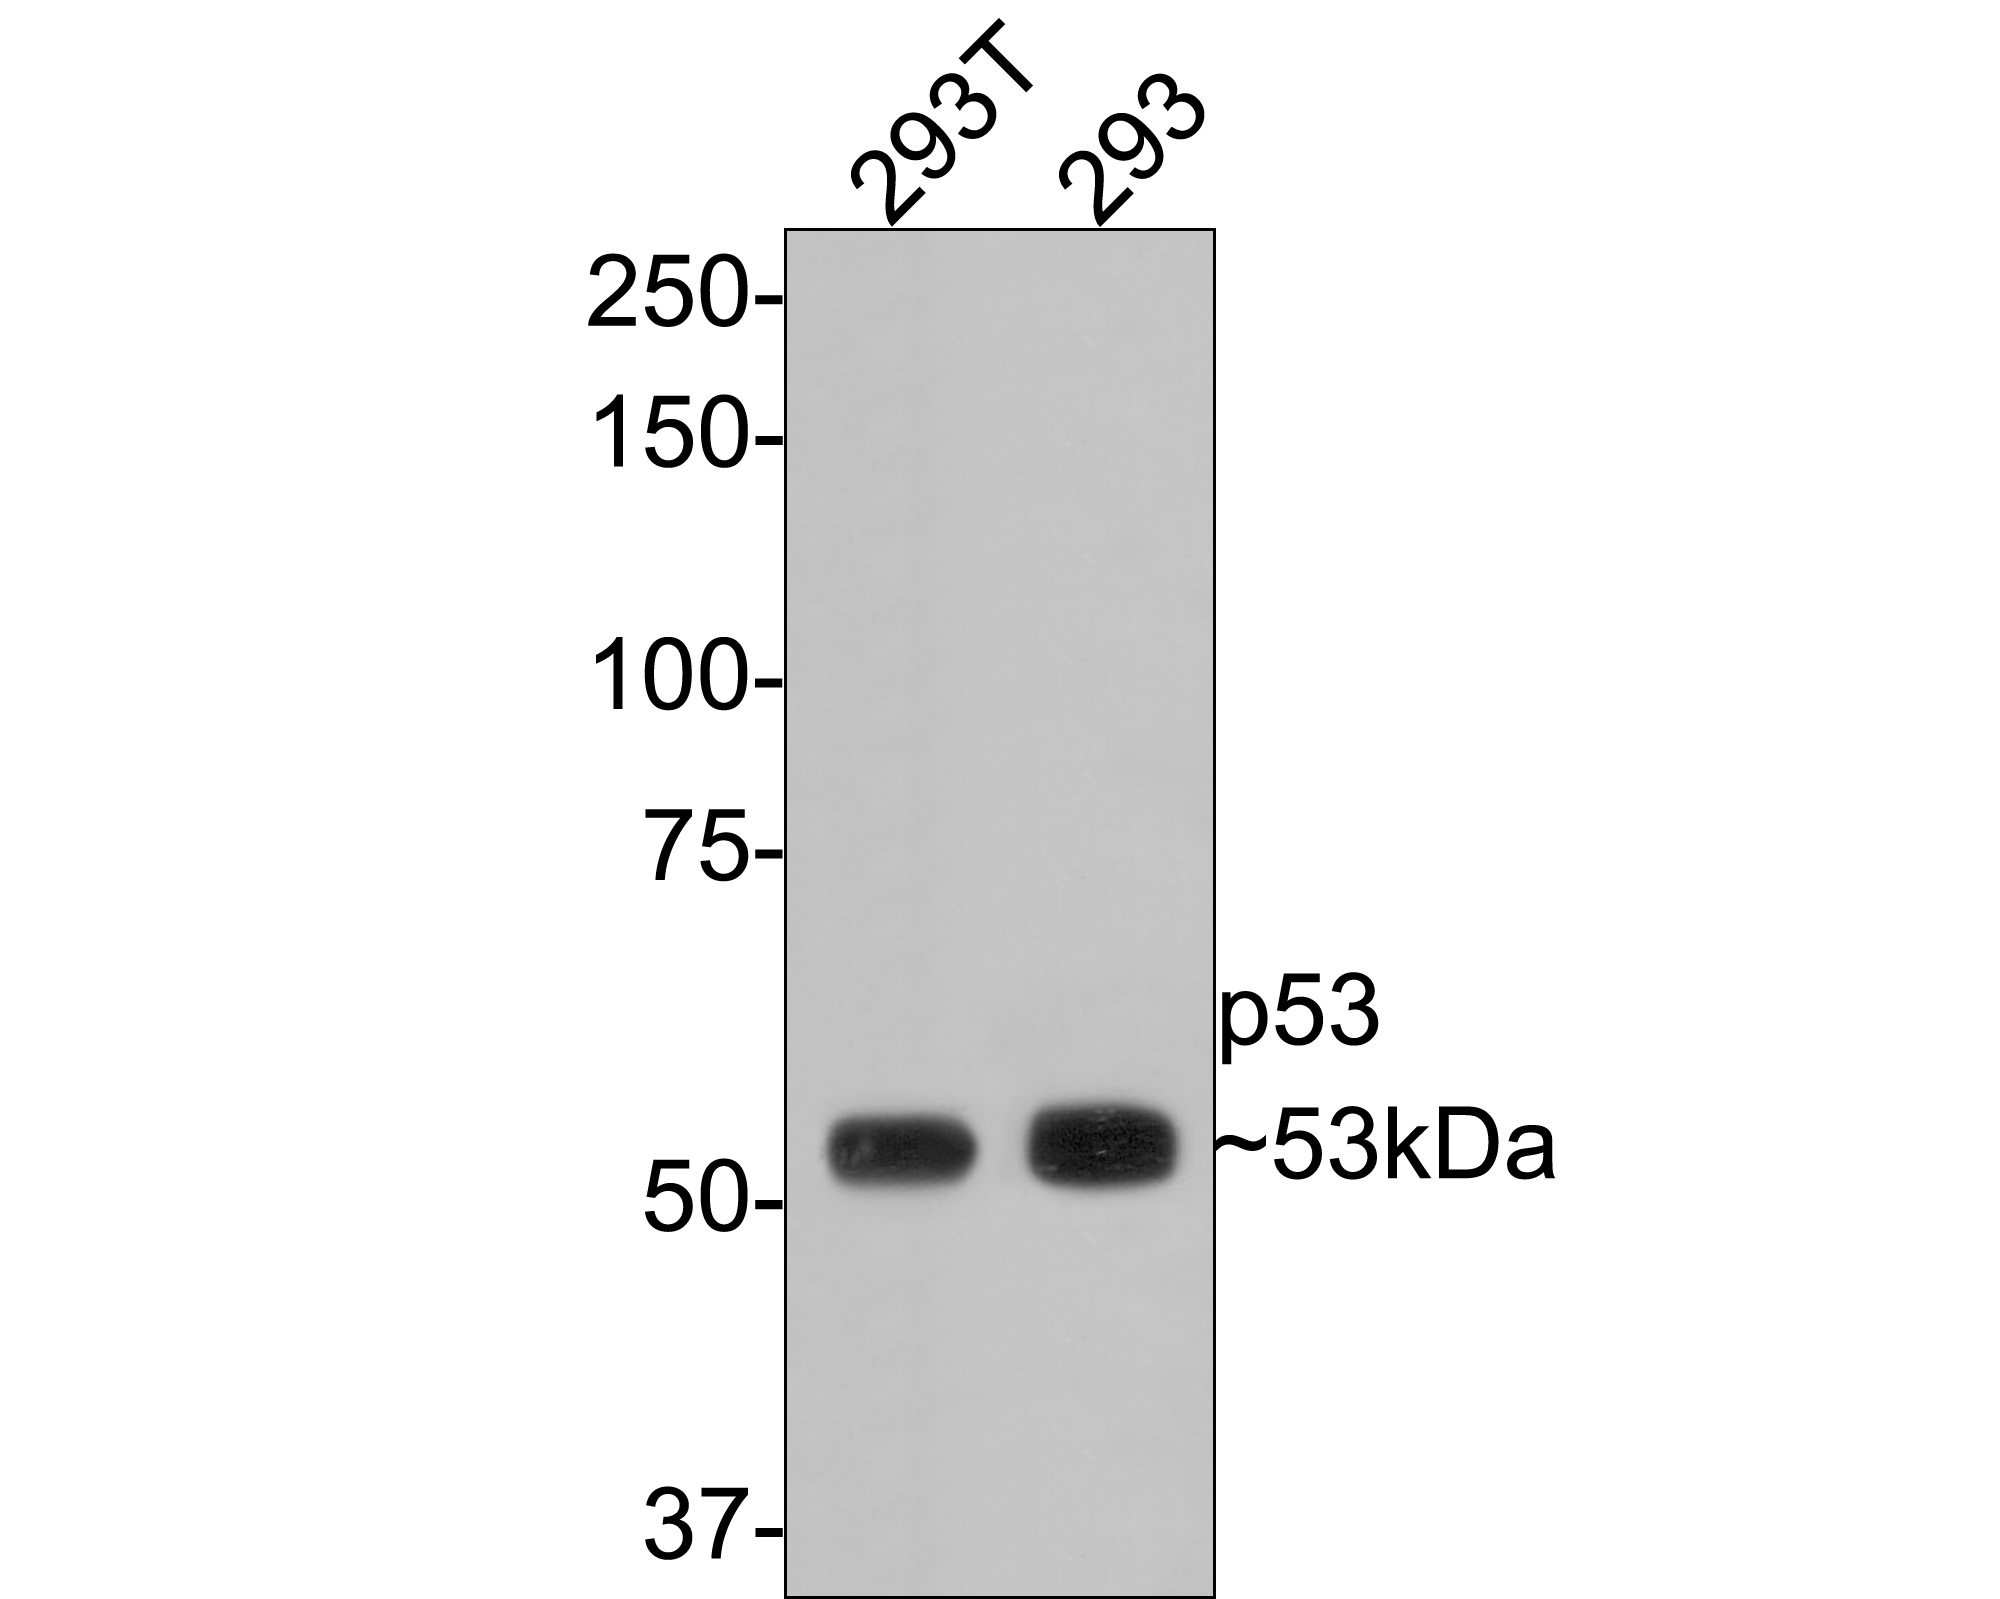 Western blot analysis of p53 on different lysates. Proteins were transferred to a PVDF membrane and blocked with 5% BSA in PBS for 1 hour at room temperature. The primary antibody (ET1601-13, 1/500) was used in 5% BSA at room temperature for 2 hours. Goat Anti-Rabbit IgG - HRP Secondary Antibody (HA1001) at 1:5,000 dilution was used for 1 hour at room temperature.<br /> Positive control: <br /> Lane 1: 293T cell lysate<br /> Lane 2: 293 cell lysate